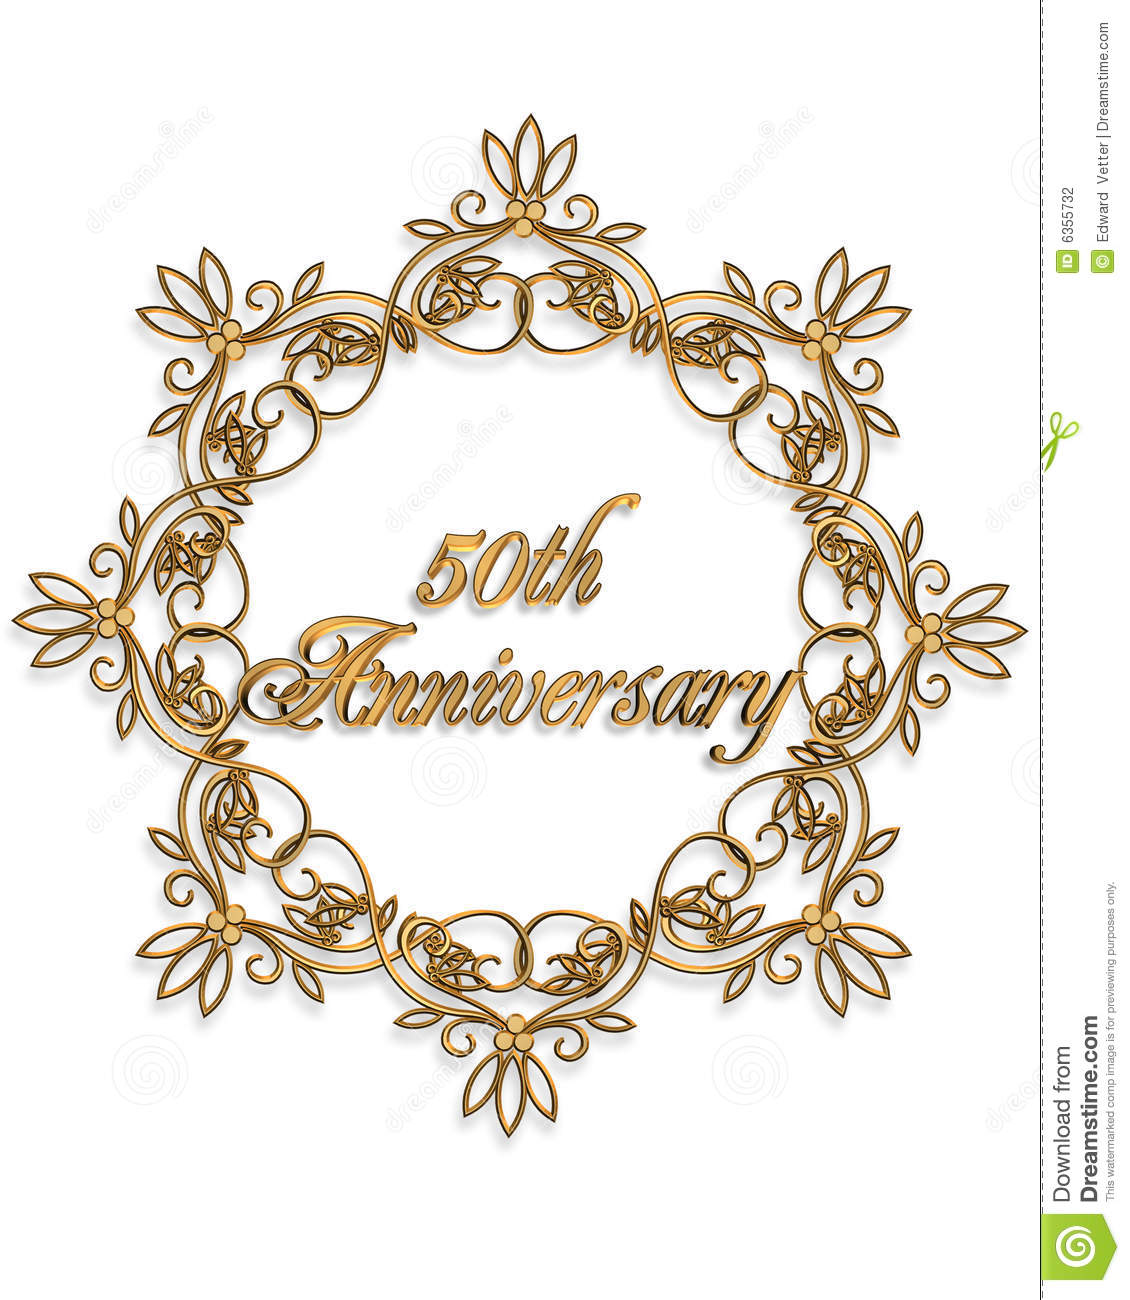 Happy 50th Wedding Anniversary Clip Art Clipart Free Clipart Ancn7p Clipart Suggest